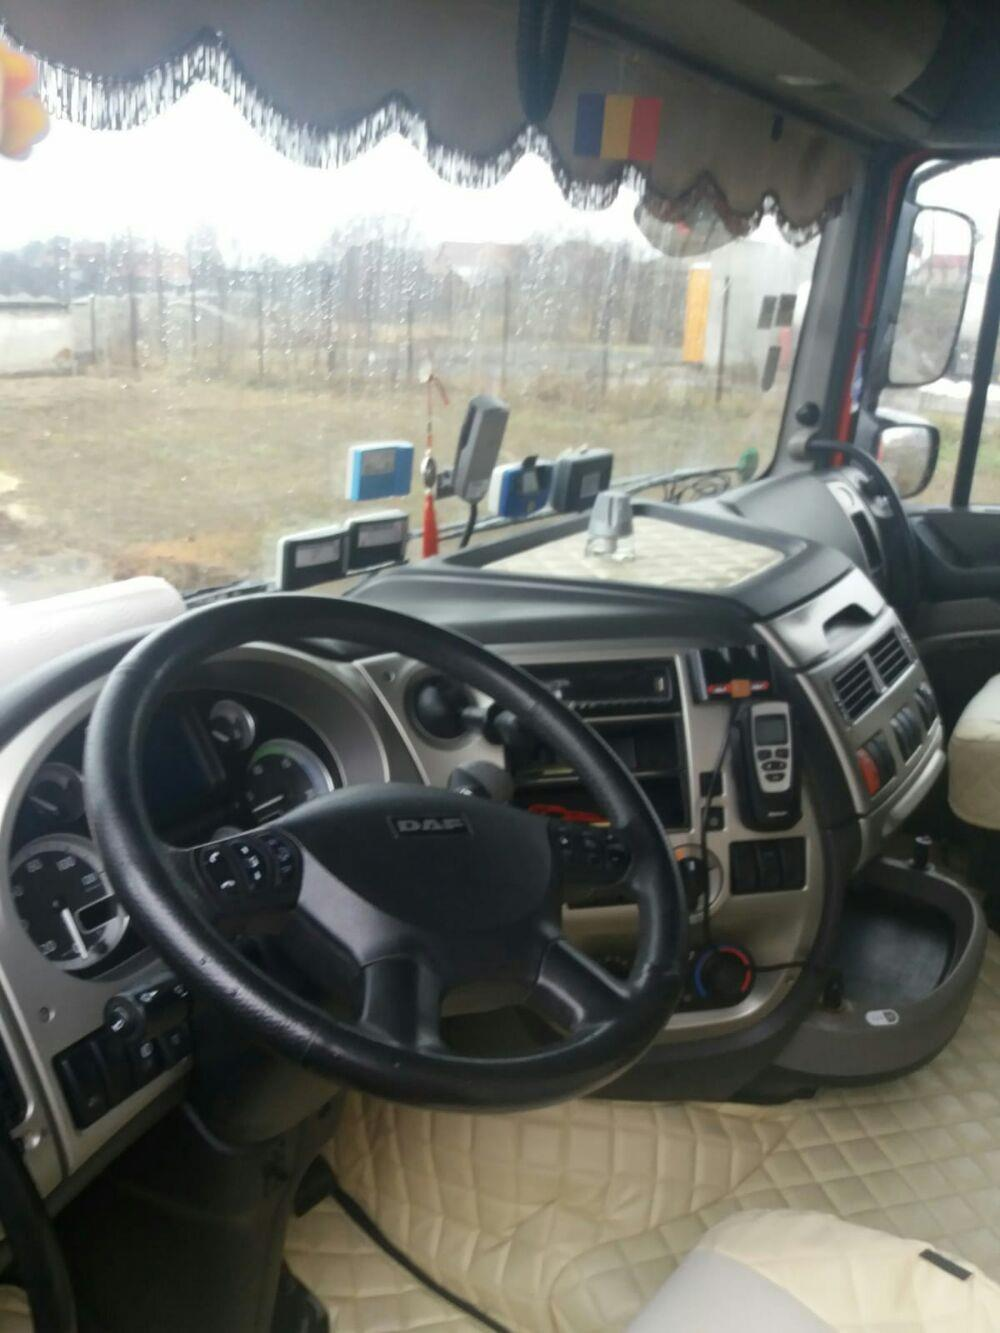 ANGAJEZ CONDUCĂTOR AUTO(ȘOFER)CATEGORIA C+E - imagine 3